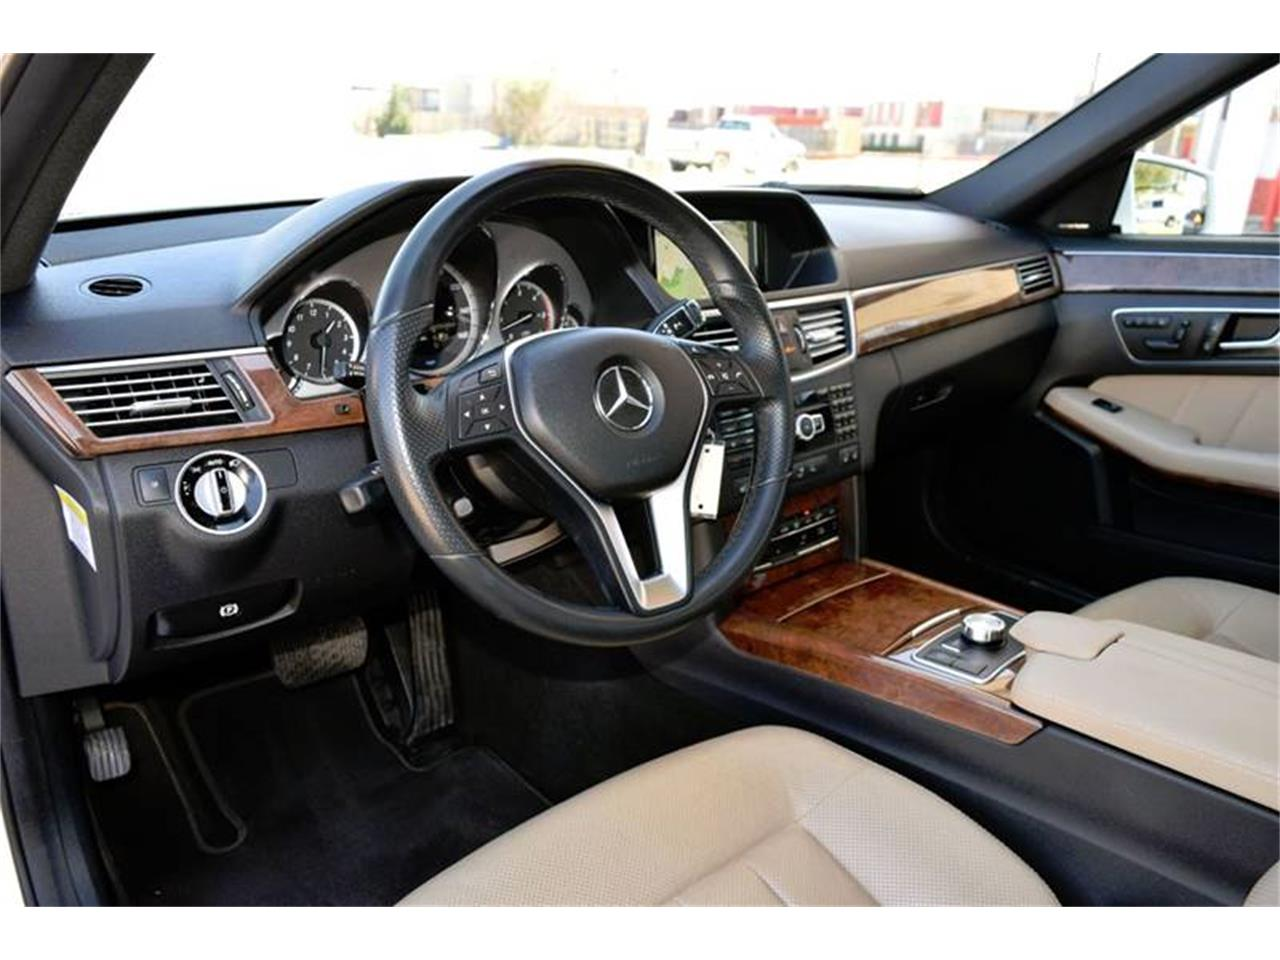 2013 Mercedes-Benz E-Class (CC-1197090) for sale in Fort Worth, Texas